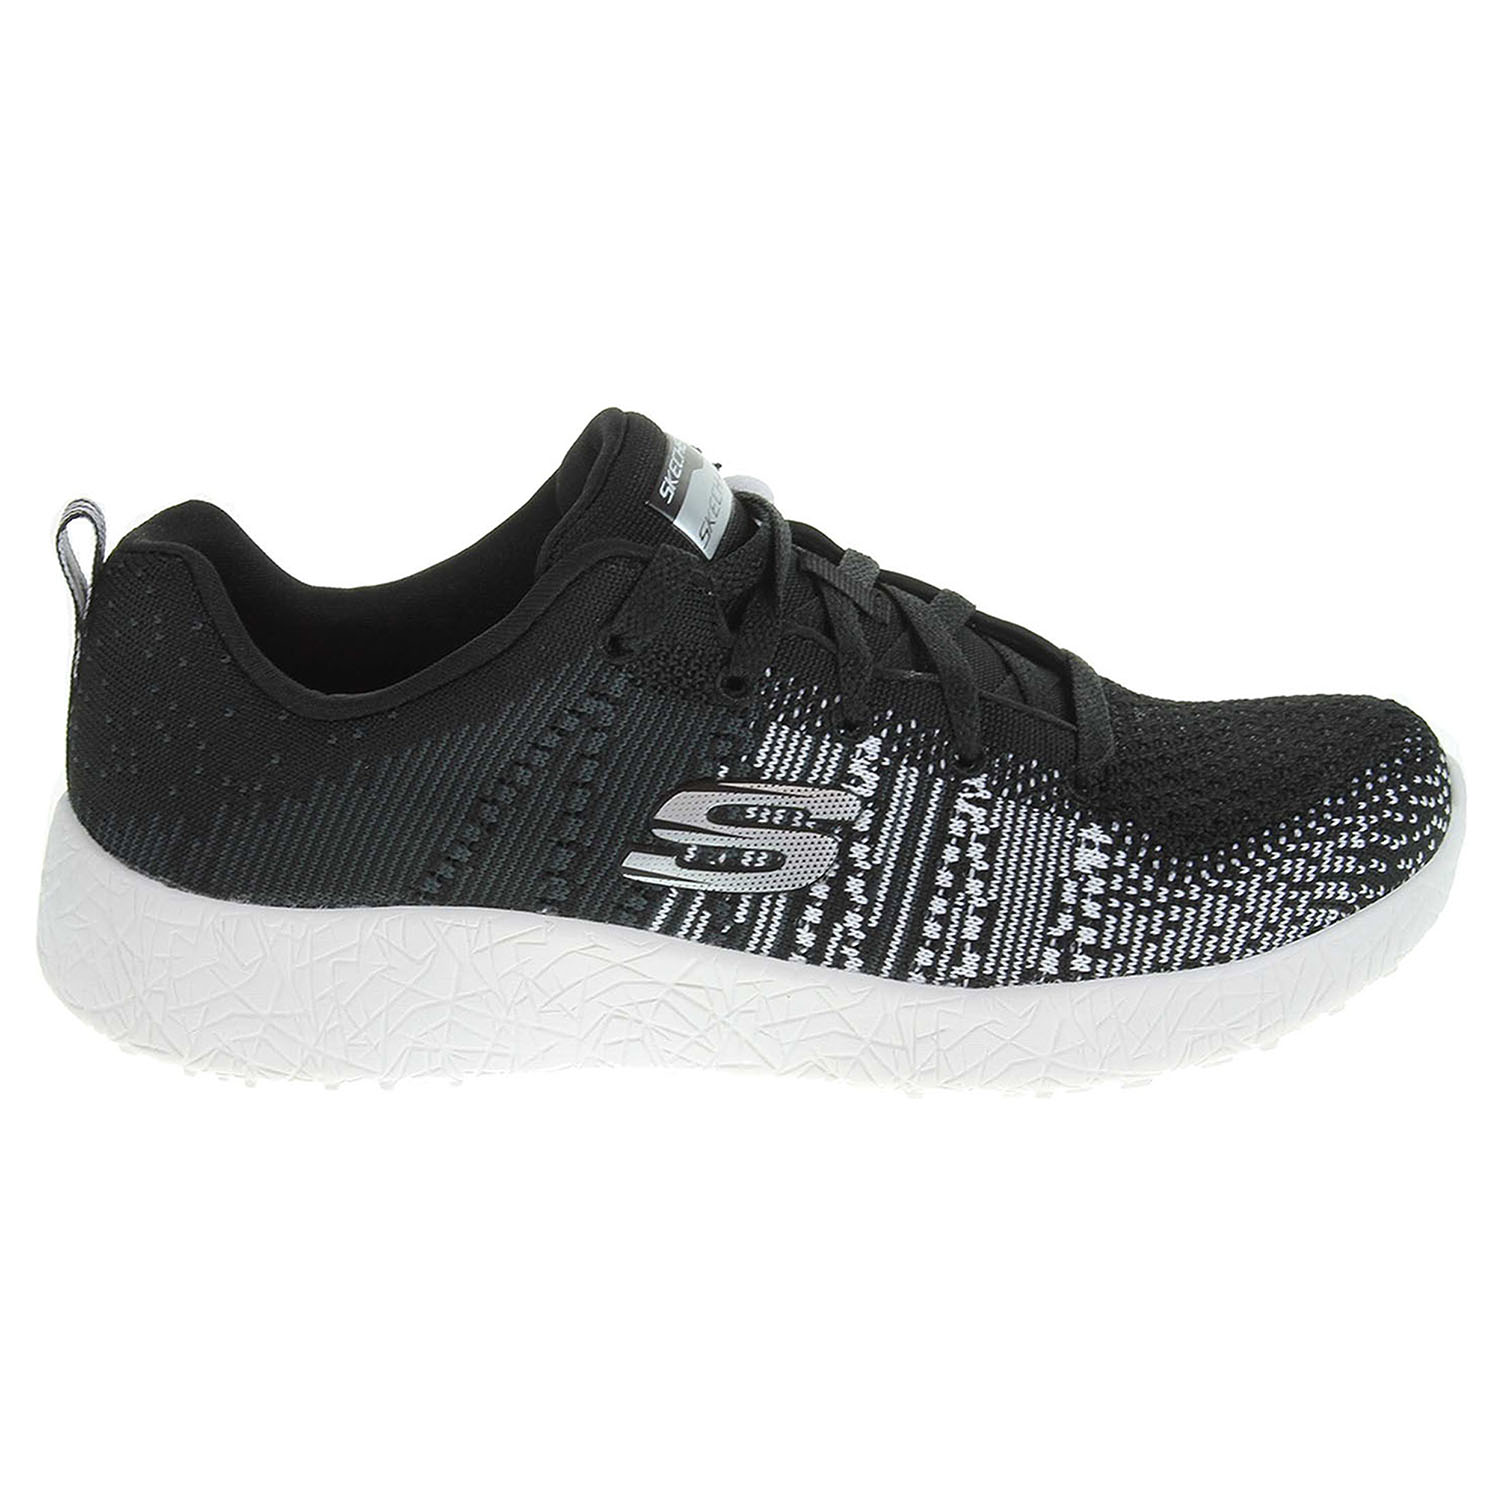 Skechers Burst Ellipse black-white  963947f396